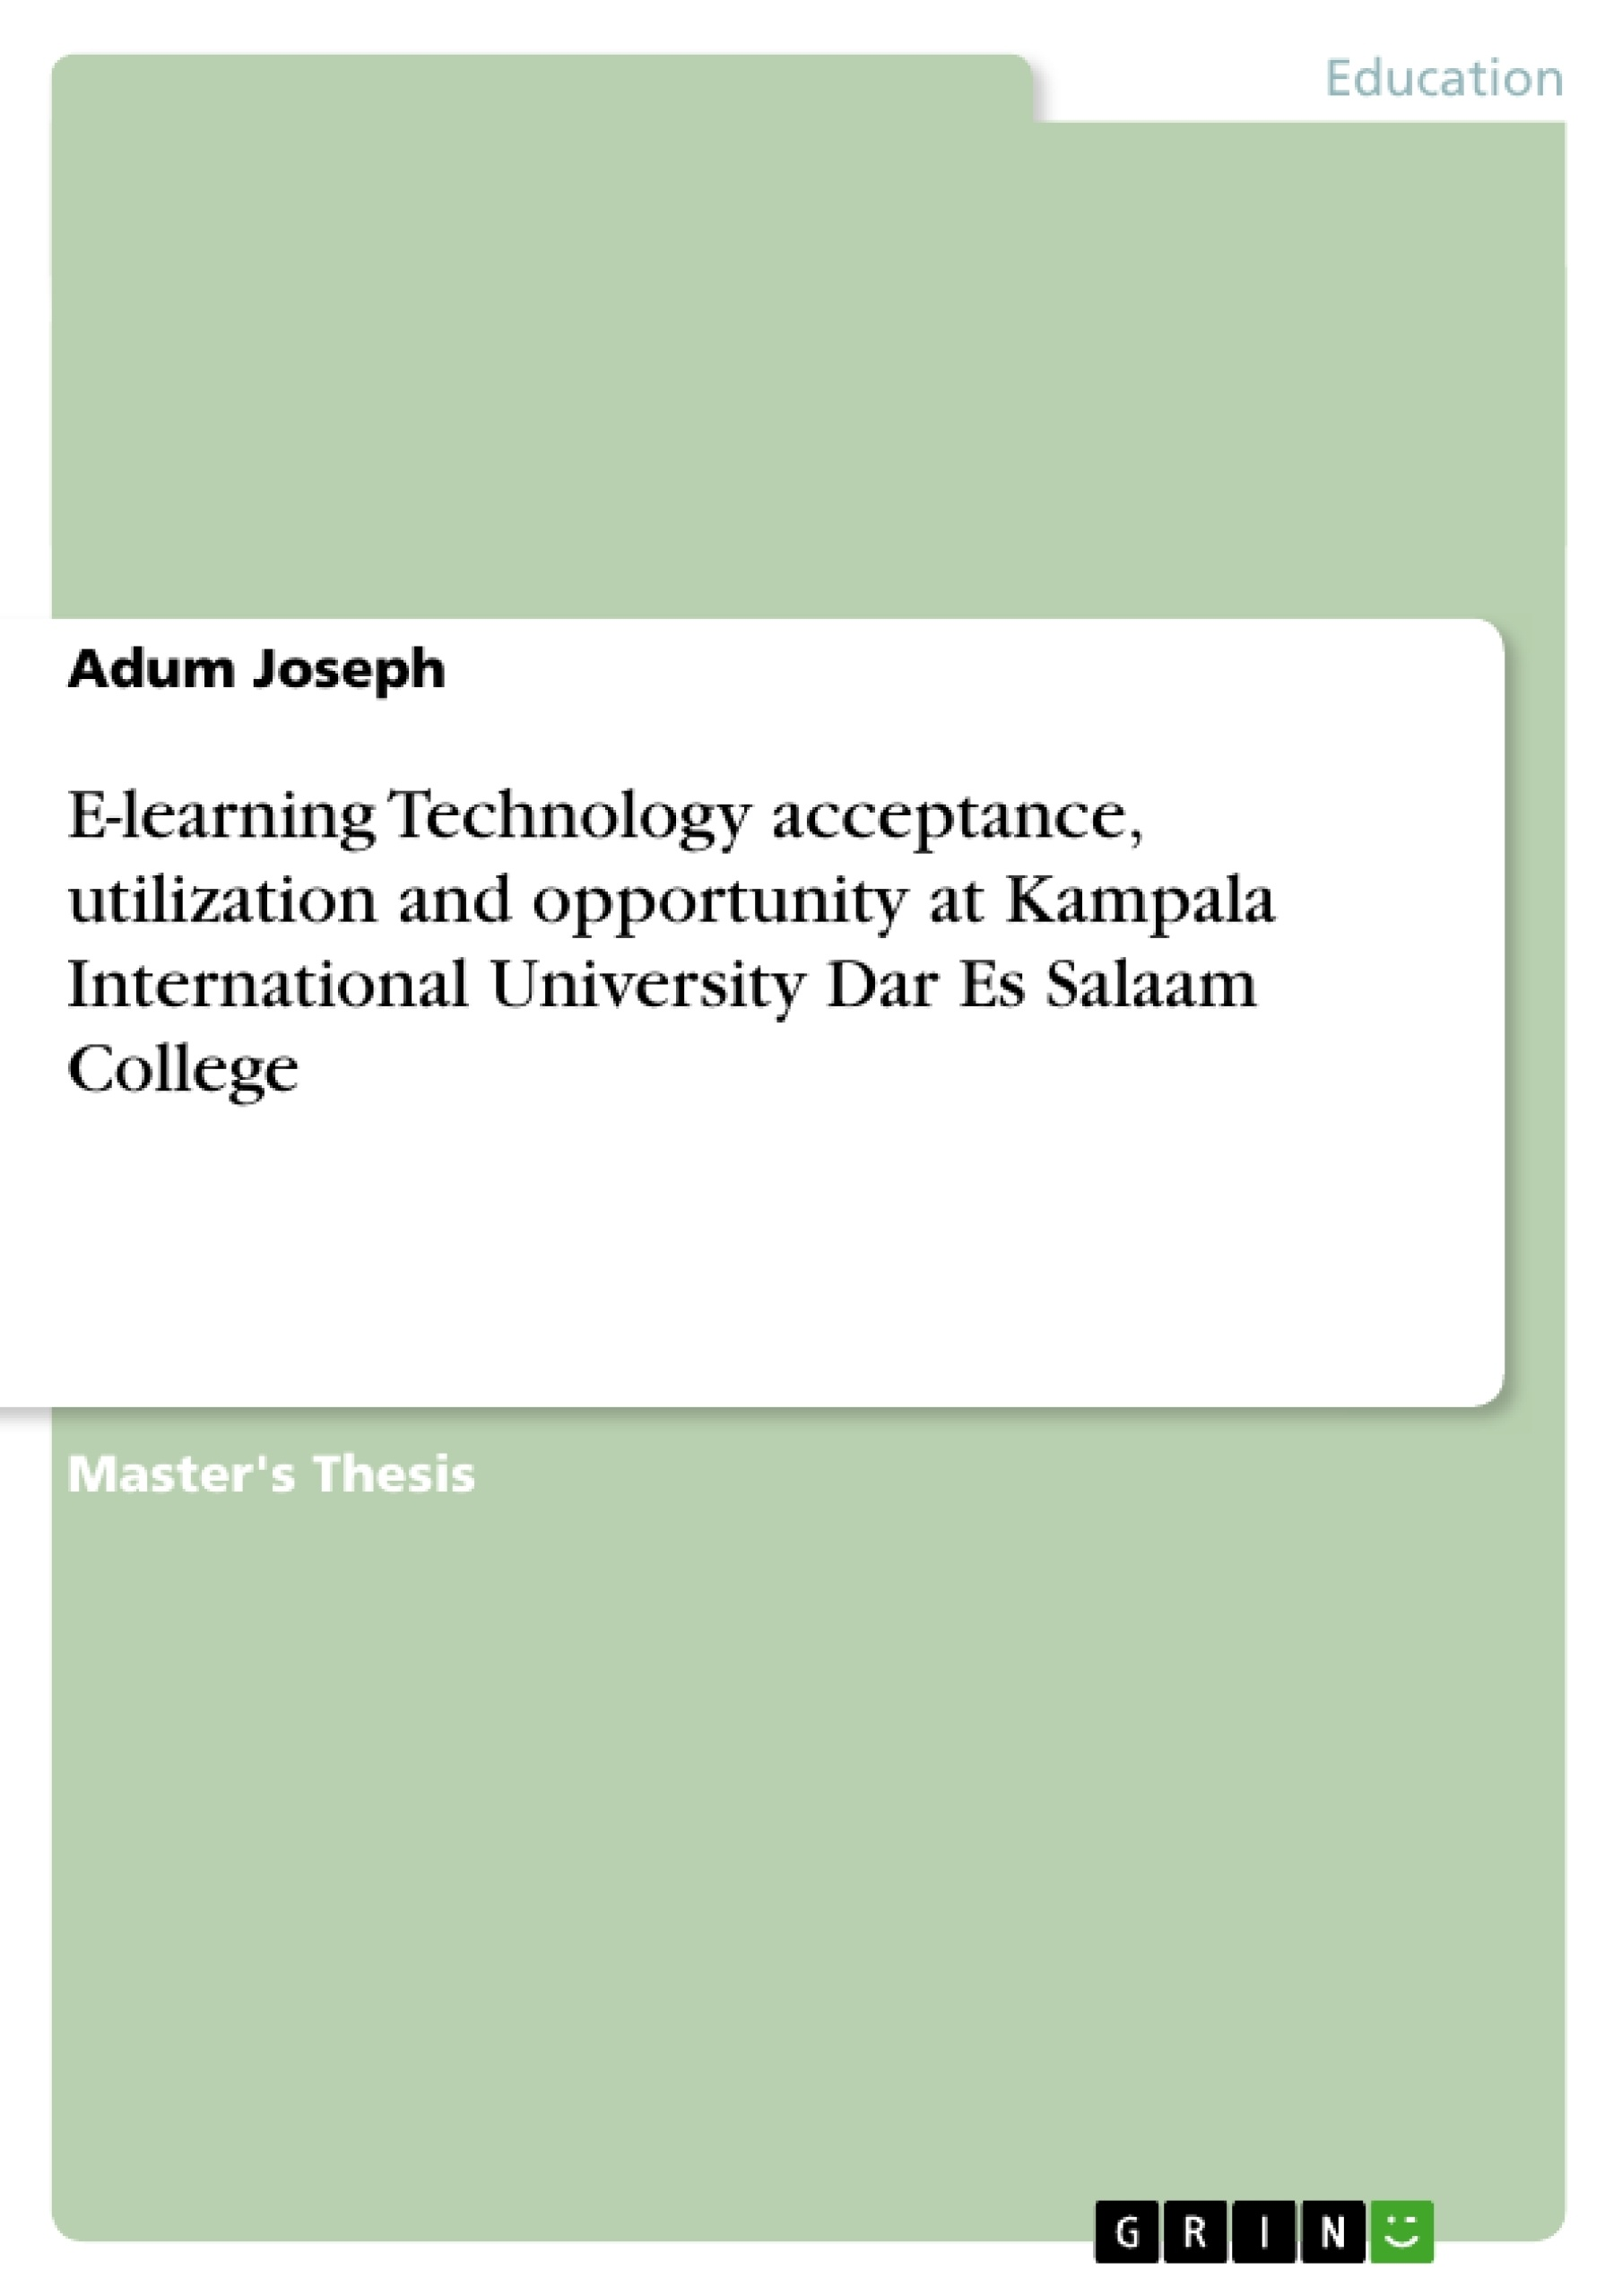 Title: E-learning Technology acceptance, utilization and opportunity at Kampala International University Dar Es Salaam College